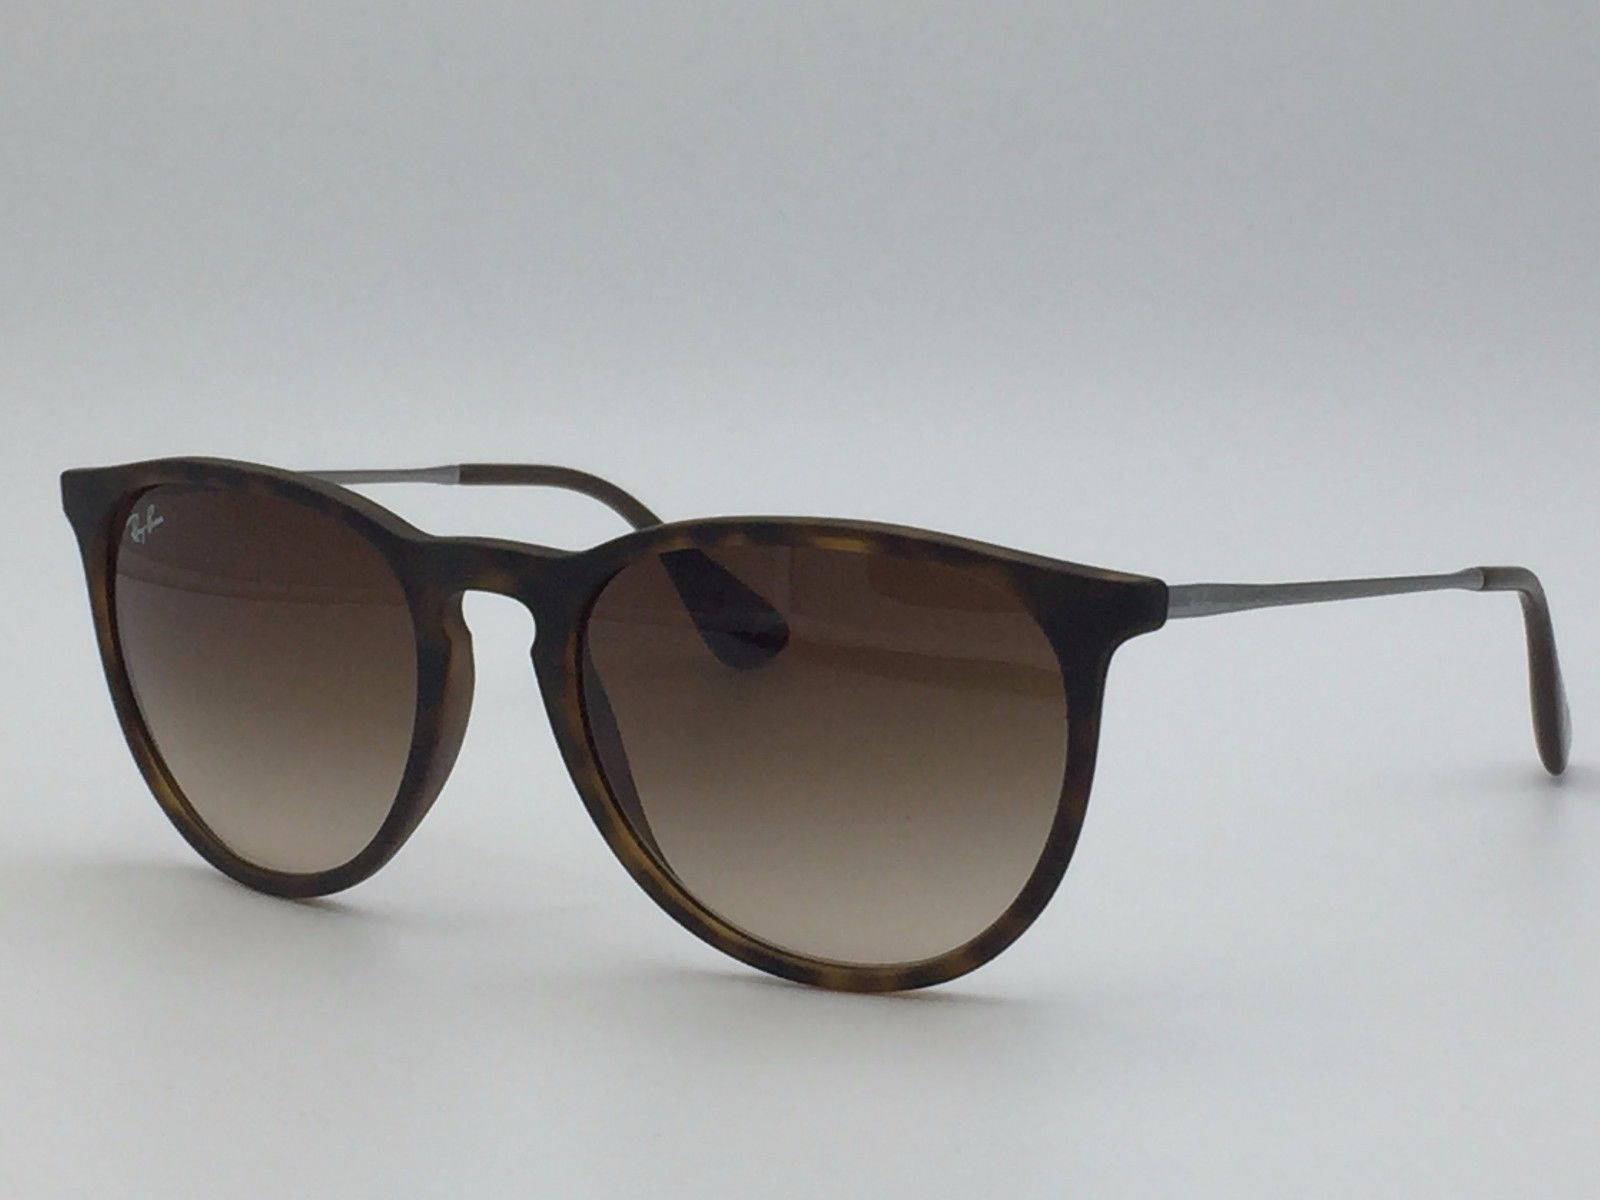 ray ban erika brown havana rubber  ray ban rb4171 erika 865/13 tortoise round sunglasses w/ gradient brown lenses